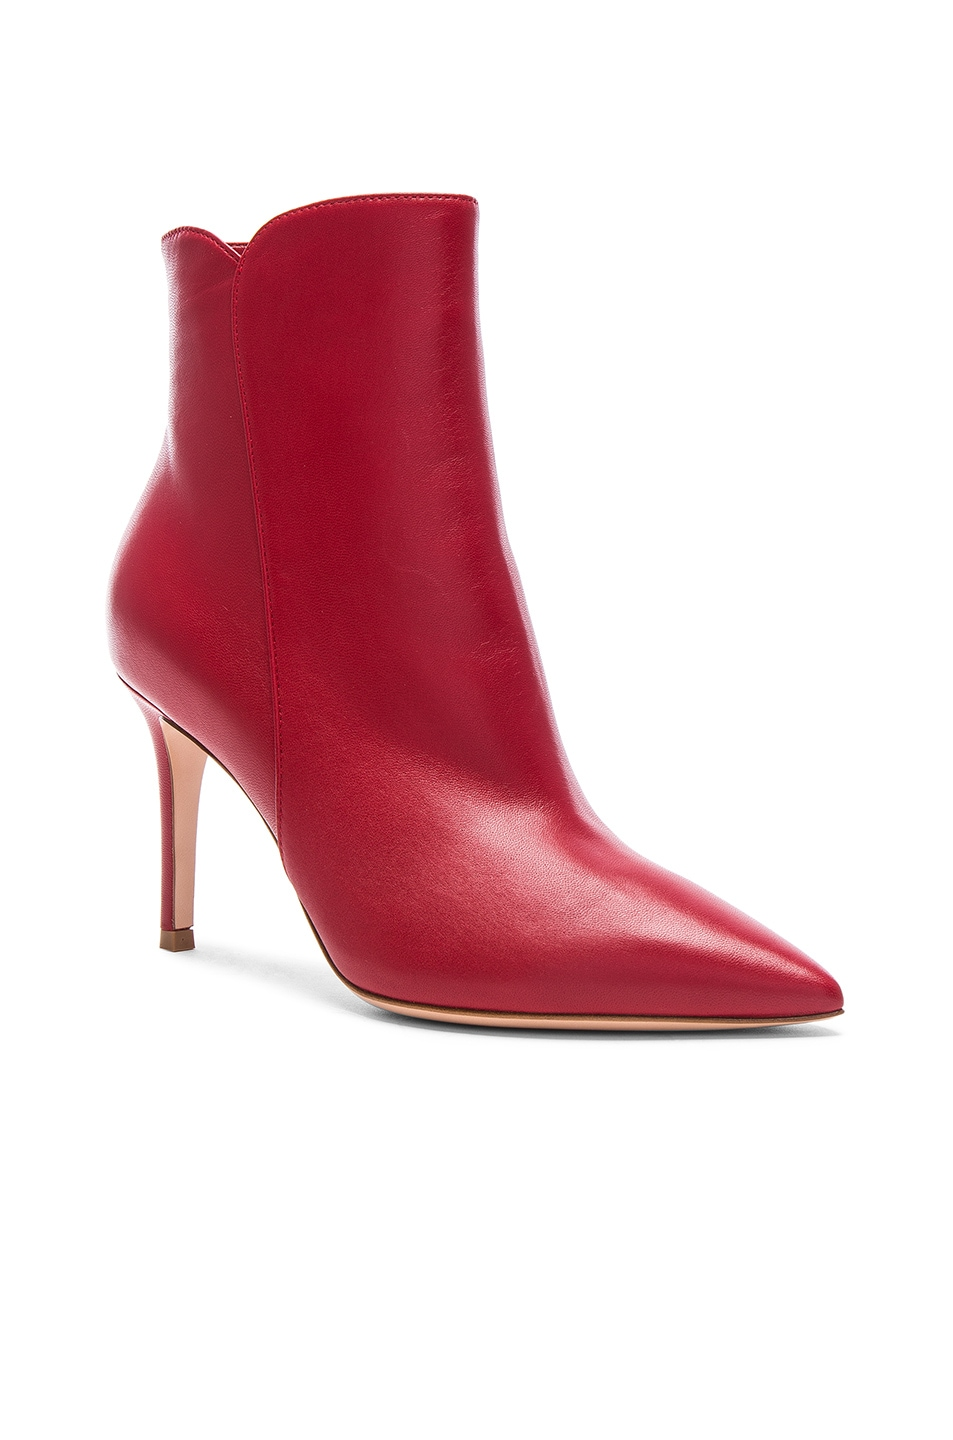 Image 2 of Gianvito Rossi Nappa Leather Levy Ankle Boots in Tabasco Red